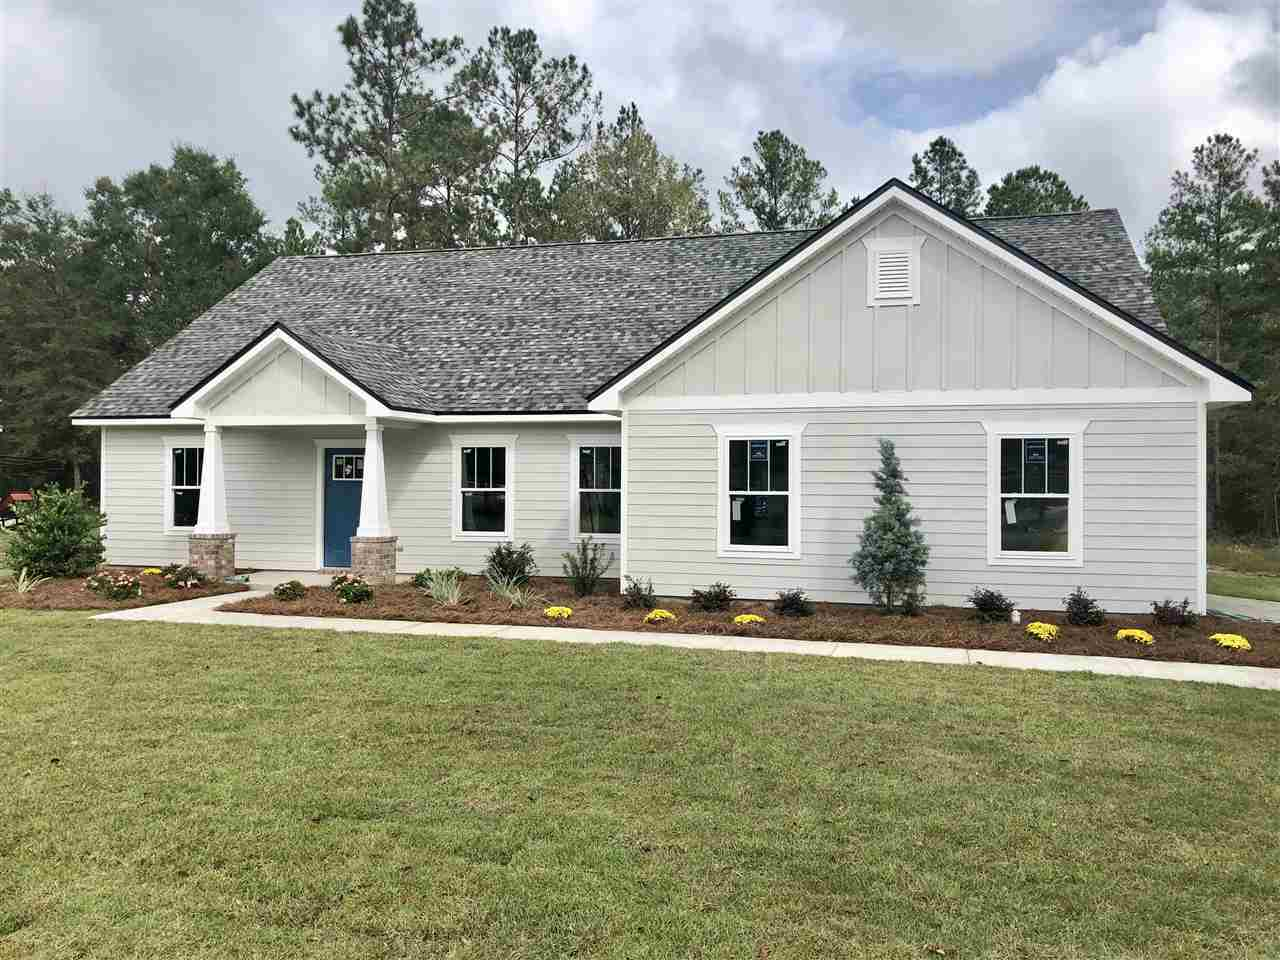 $329,000 - 3Br/2Ba -  for Sale in Wildwood Country Club, Crawfordville